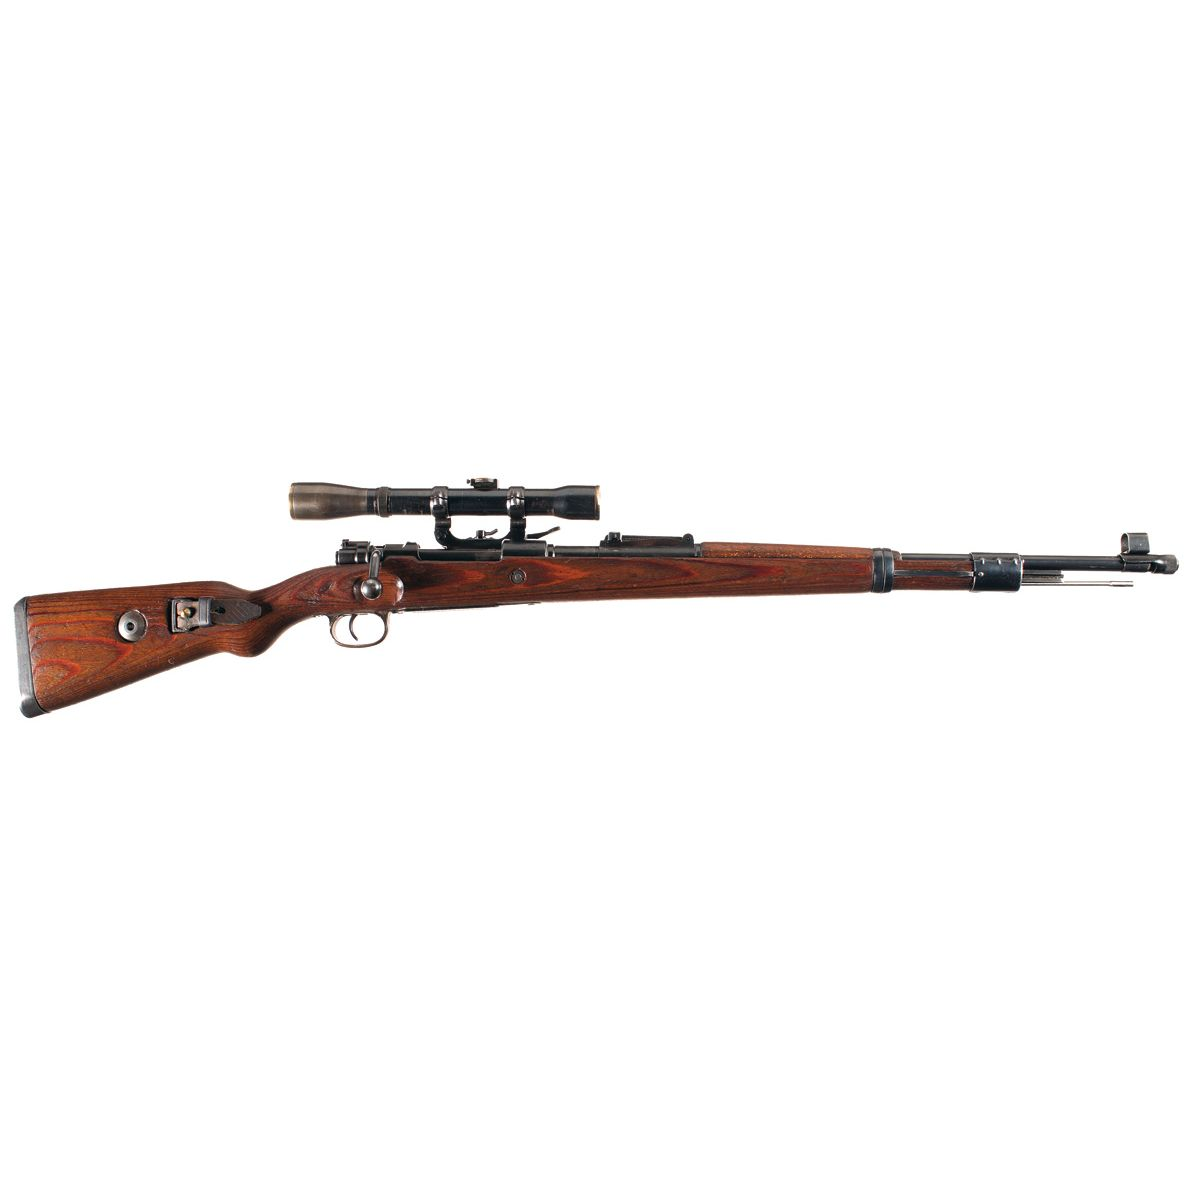 Drawn snipers bolt action rifle Sniper Code K98 Mauser 44